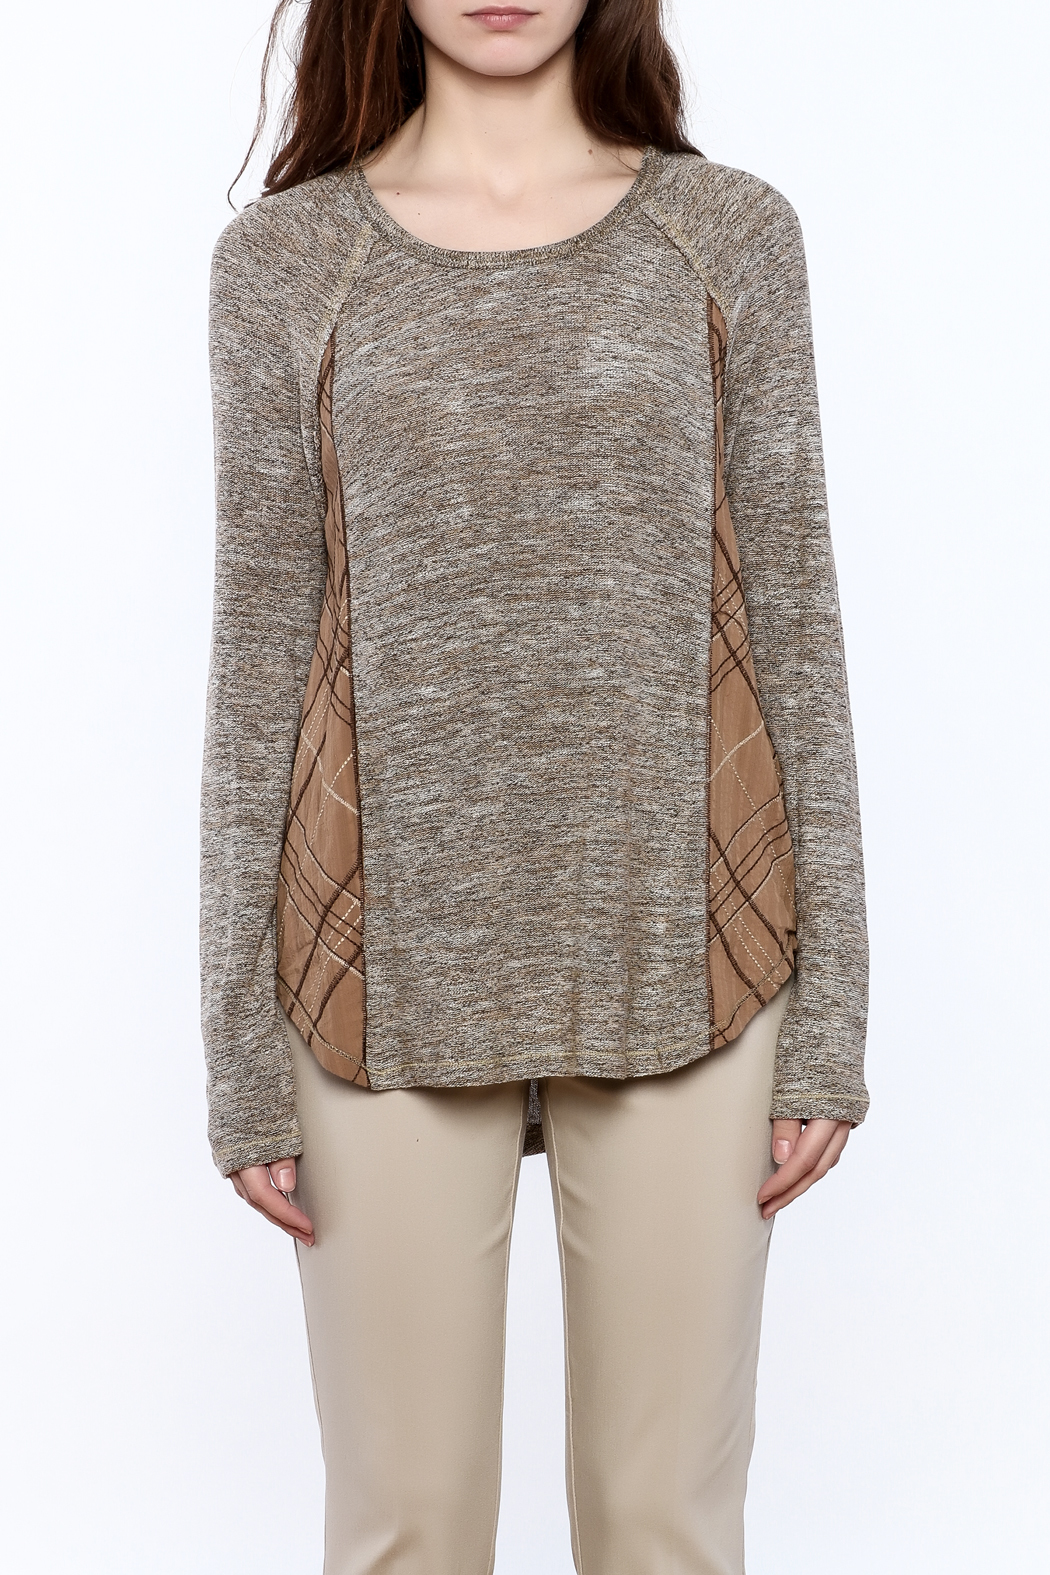 Mystree Grey Knit Top - Side Cropped Image